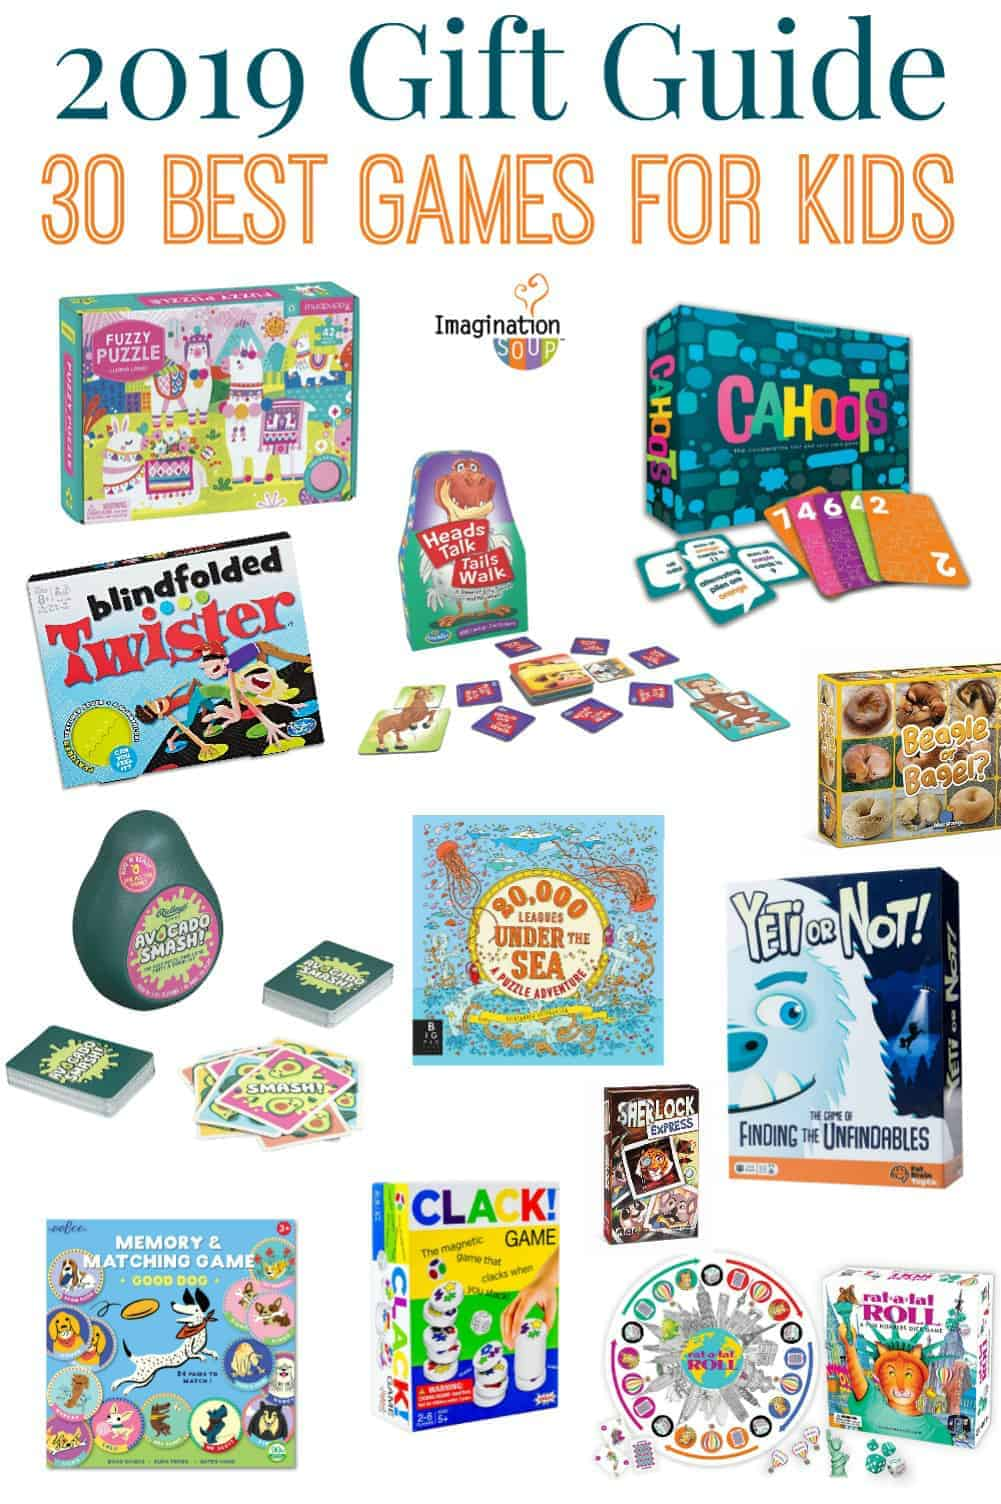 The 30 Best Games for Kids (Give as Gifts for Christmas 2019)